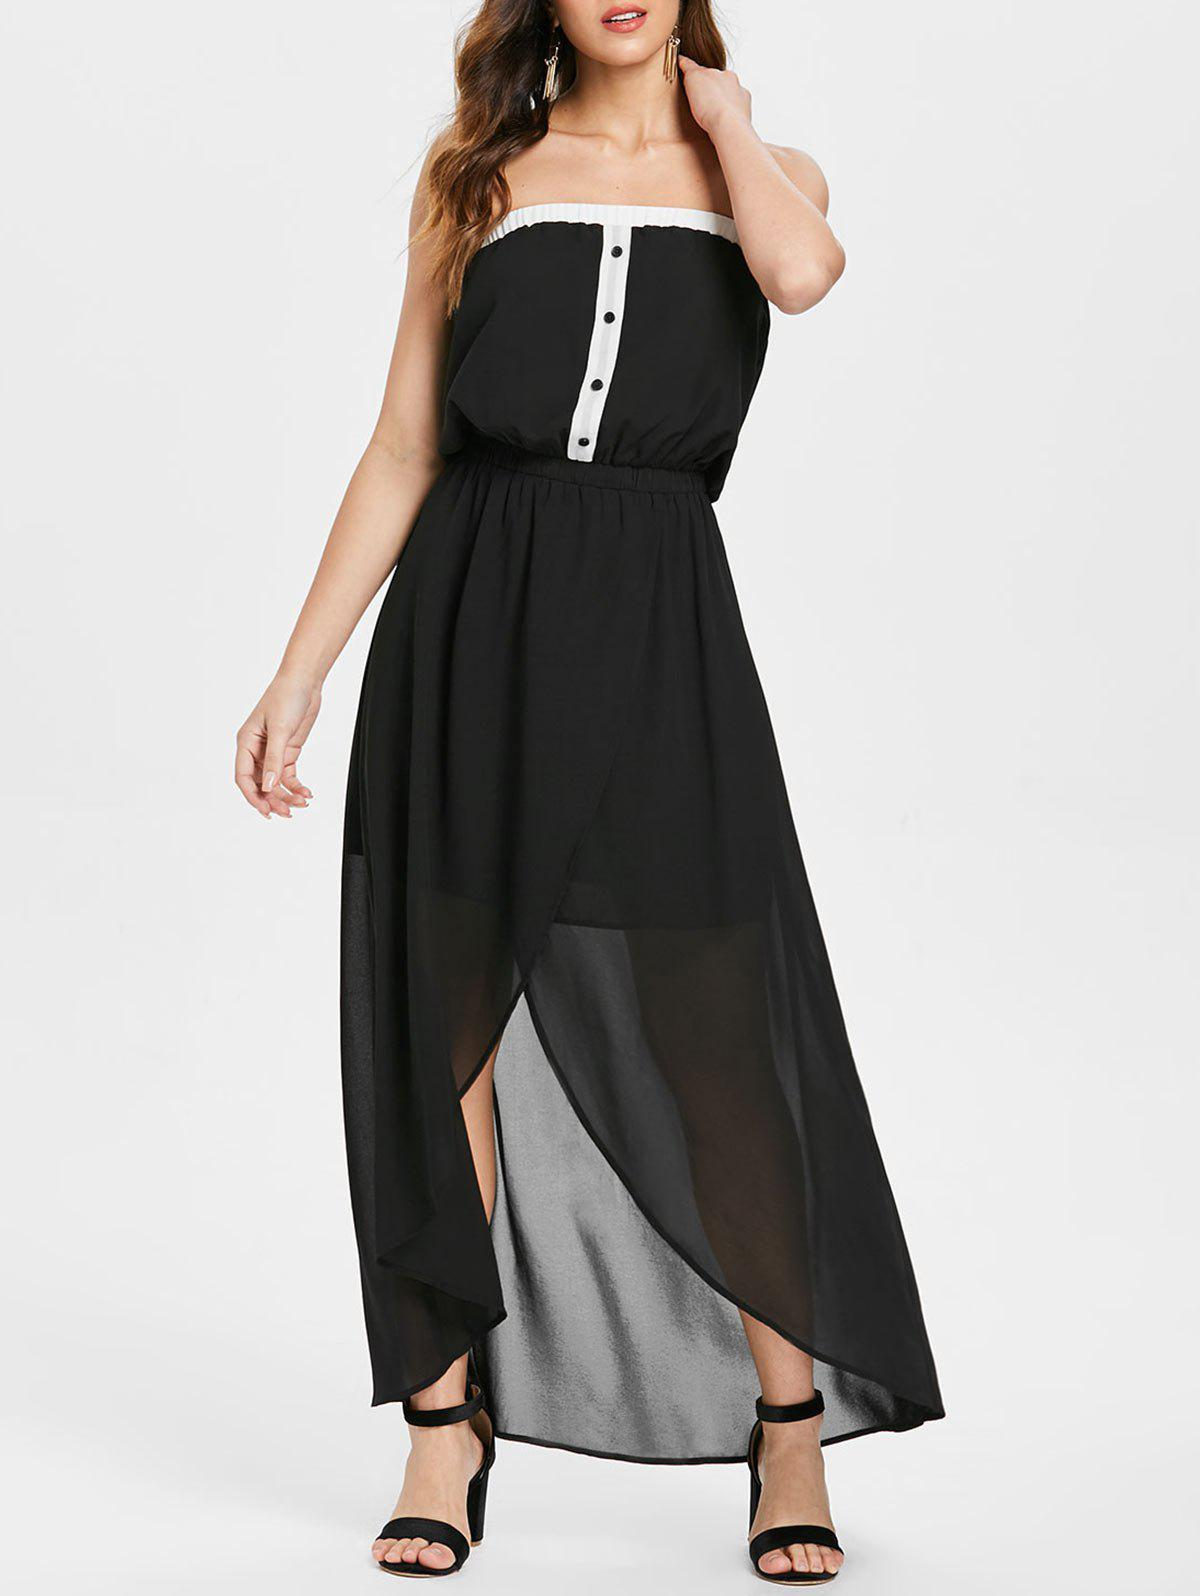 Sale Half Buttons Bandeau Strapless Chiffon Dress